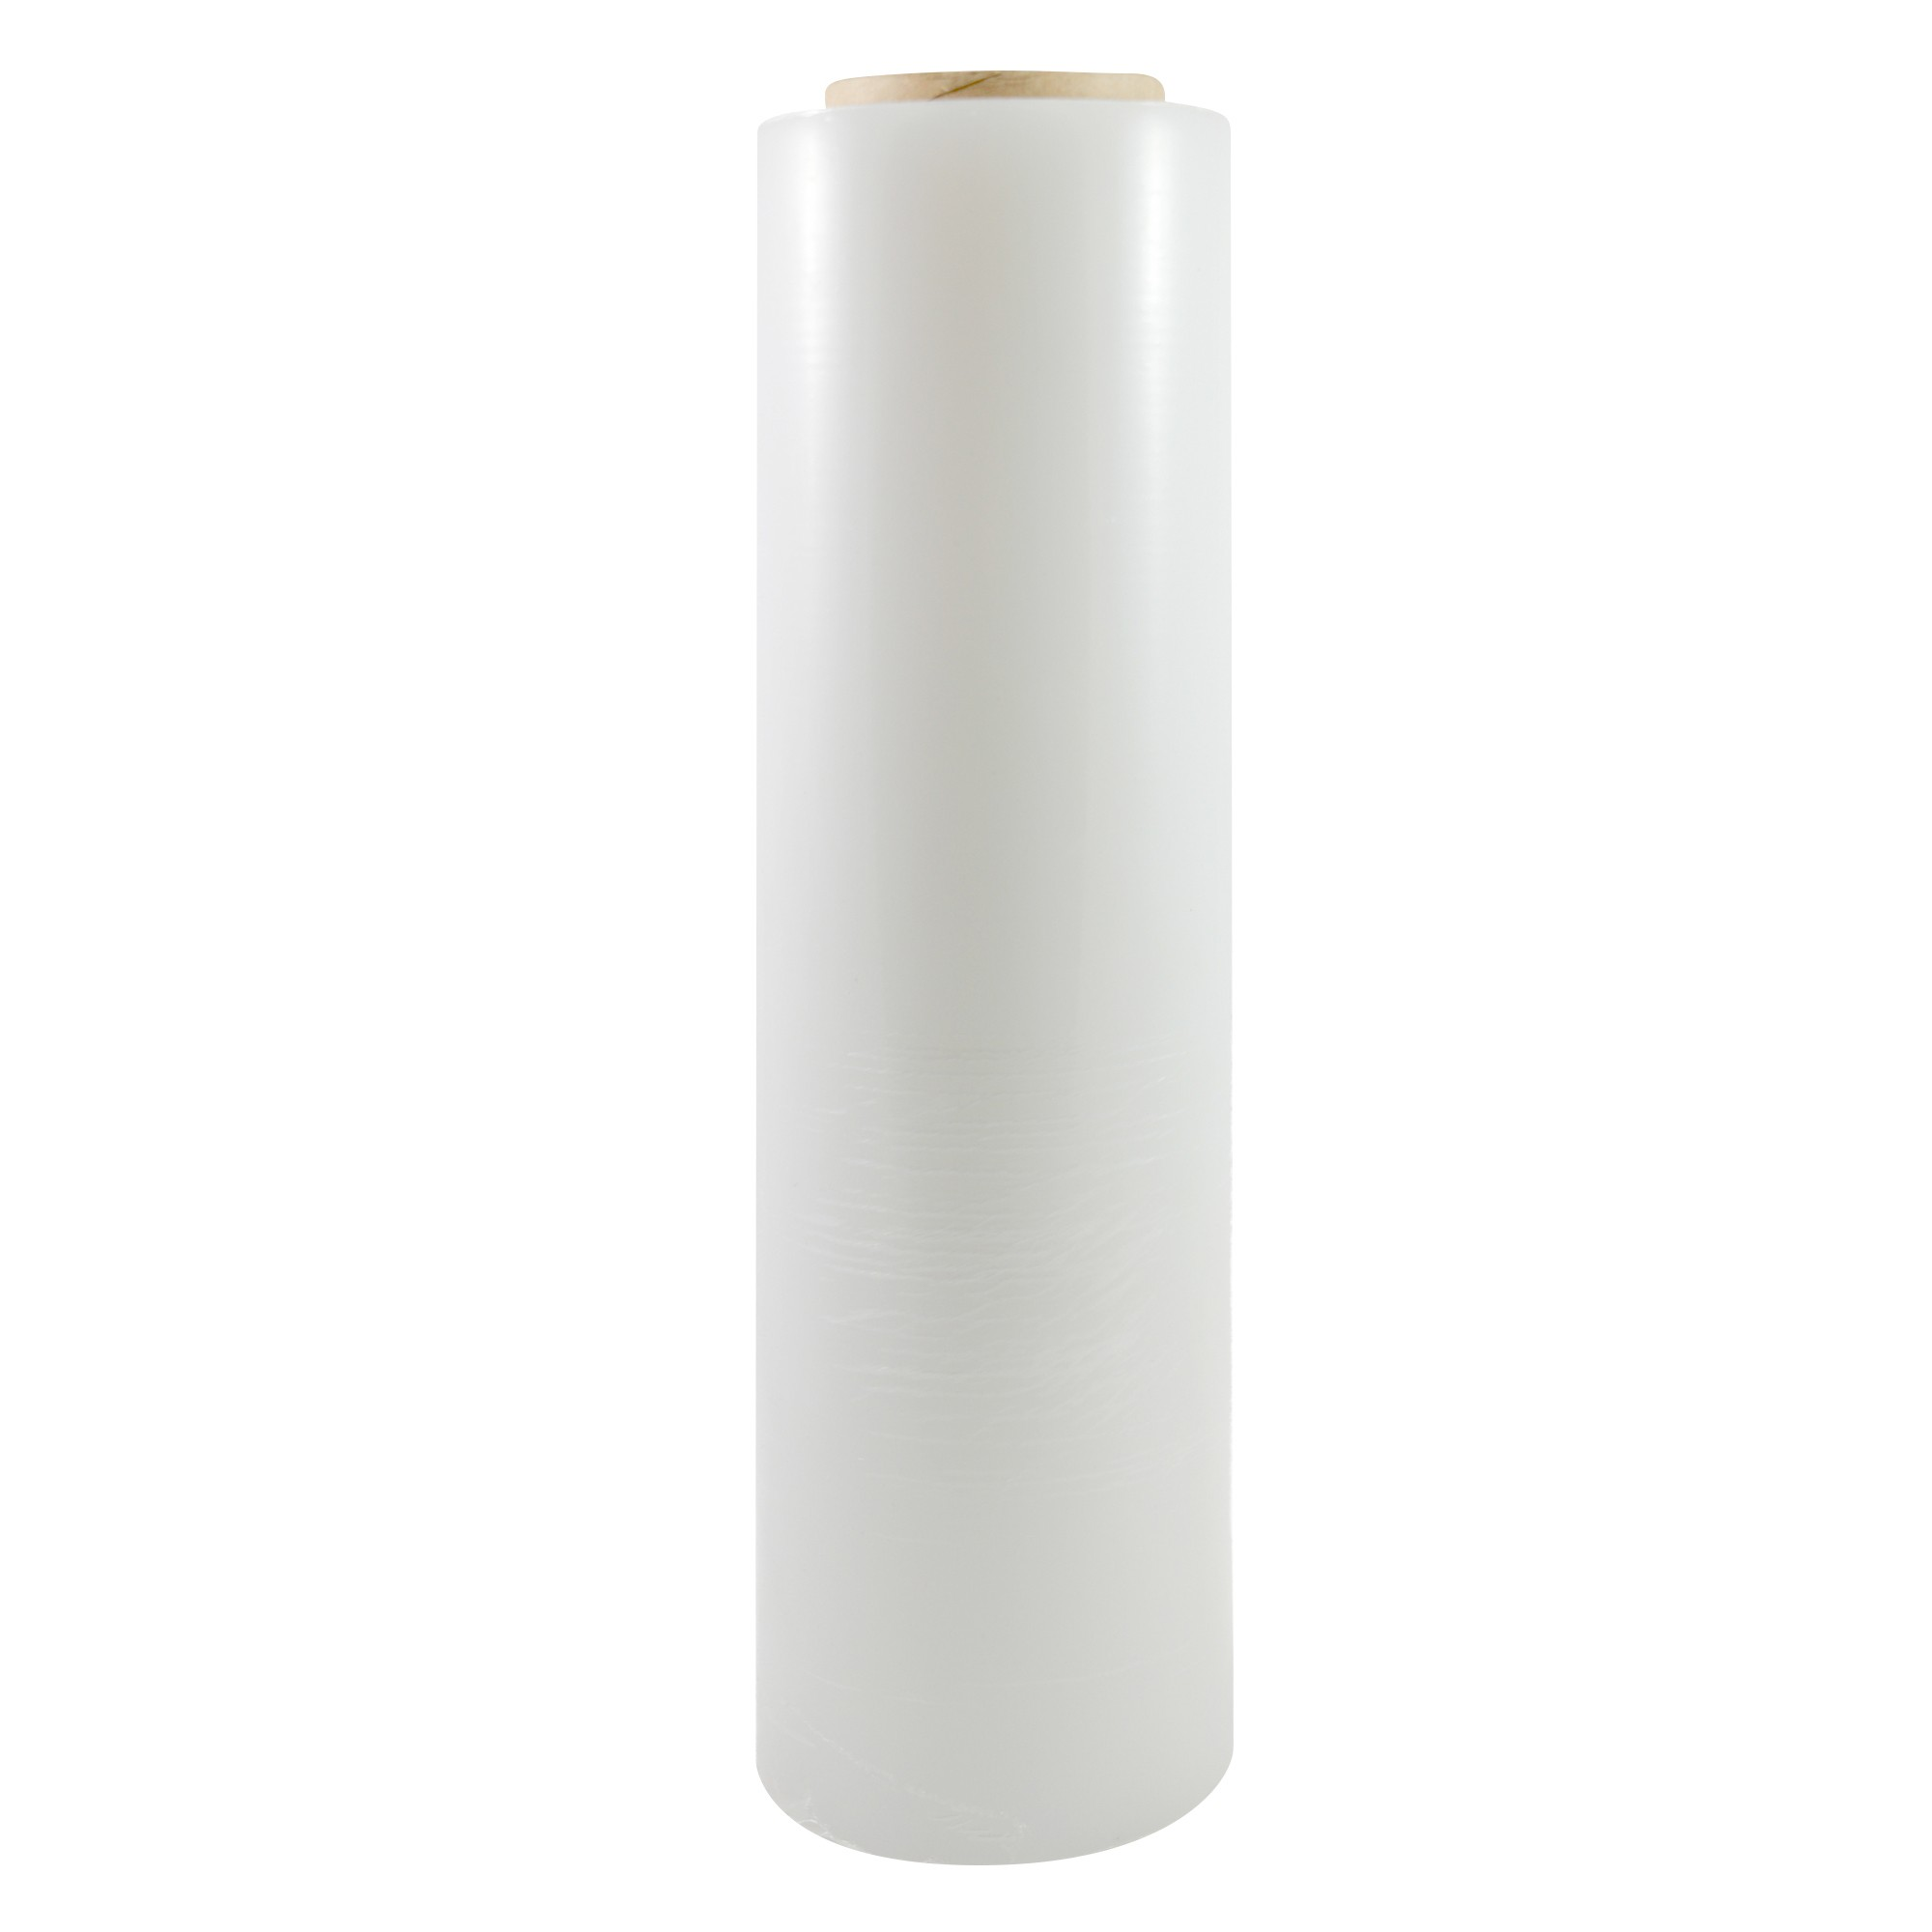 "TOTALPACK® 18"" x 1000' 85 Gauge, 4 Rolls. Gauge Blown Stretch Clear Film"